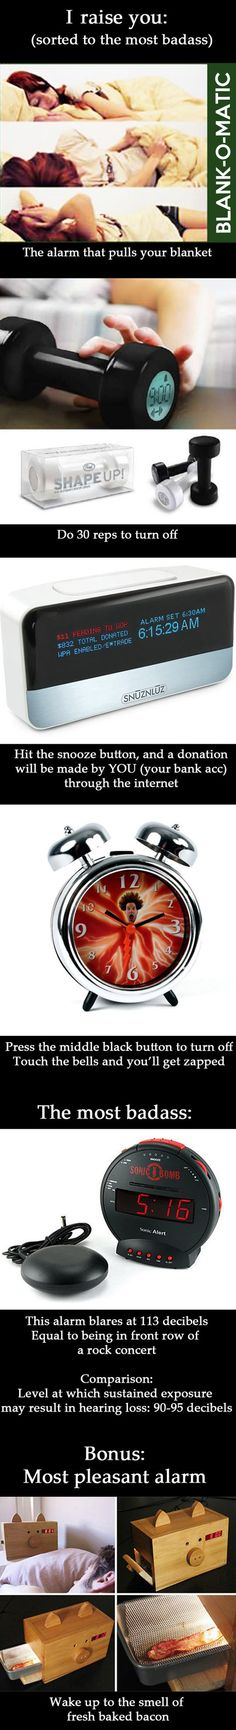 Some original alarm clocks…